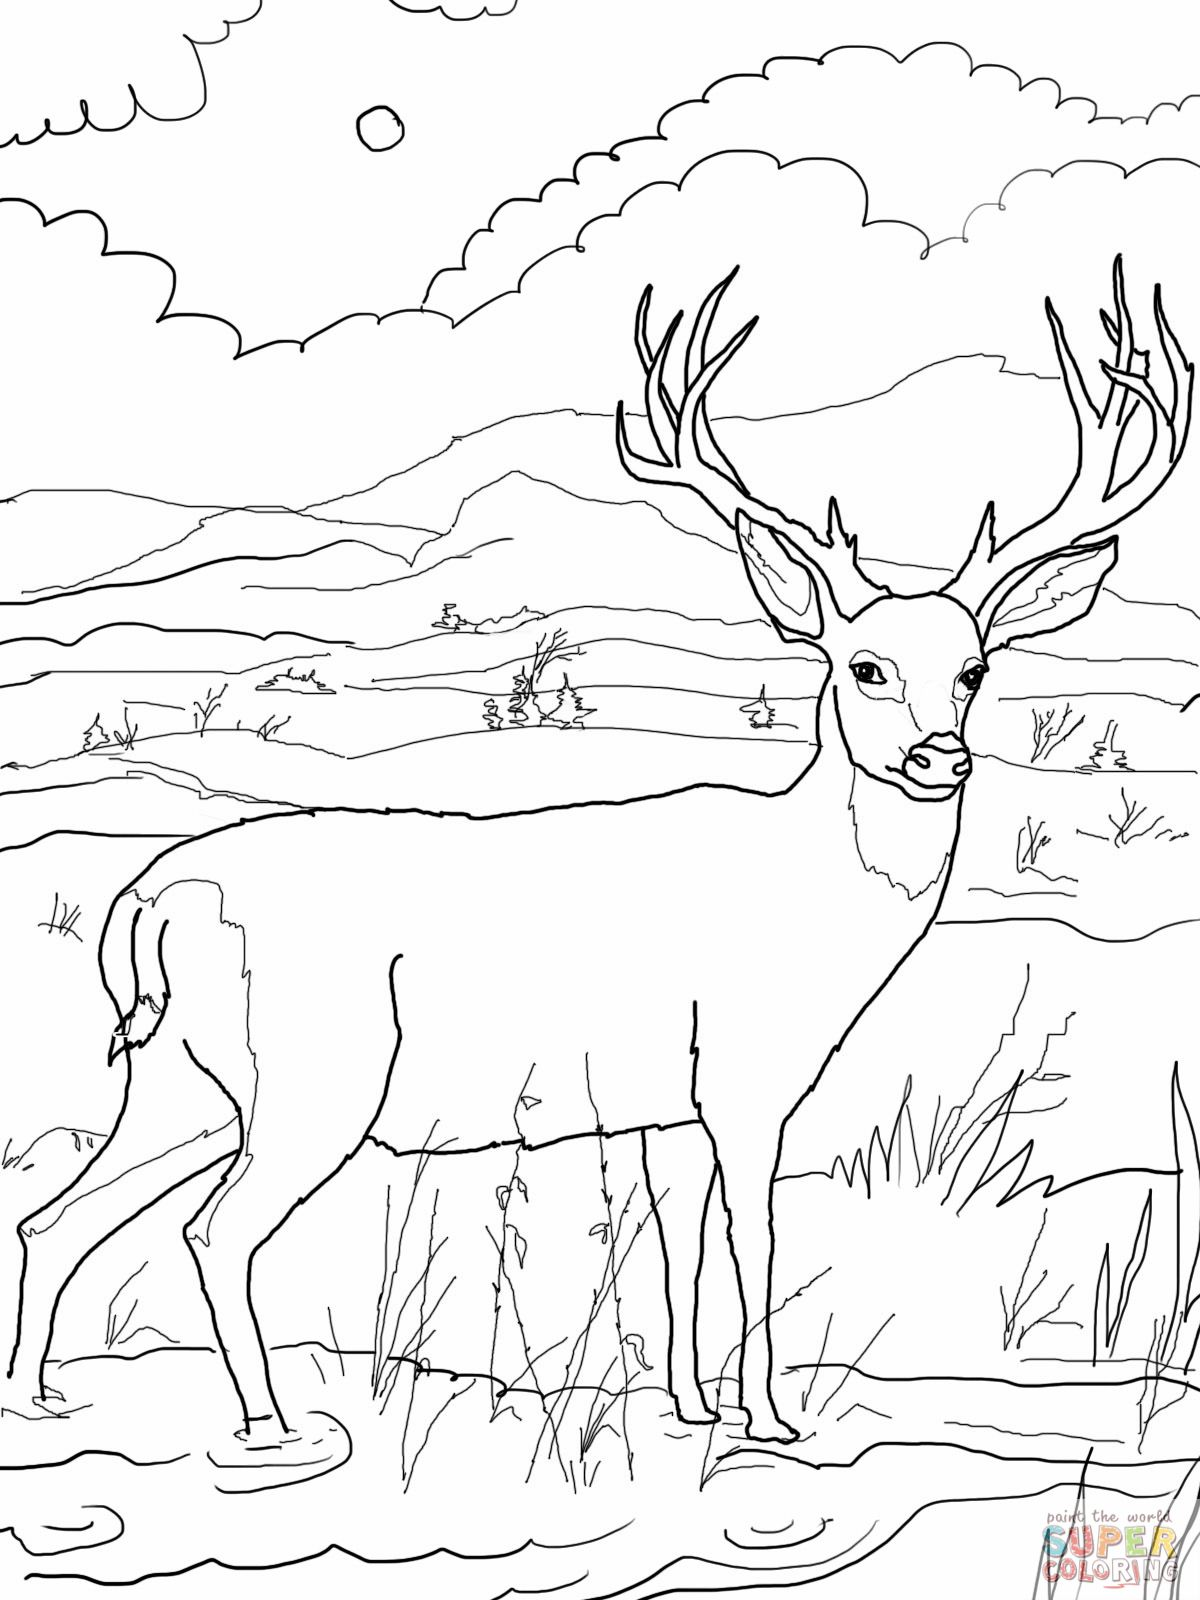 Deer Coloring Pages | Blacktail Mule Deer Coloring Online | Super ...